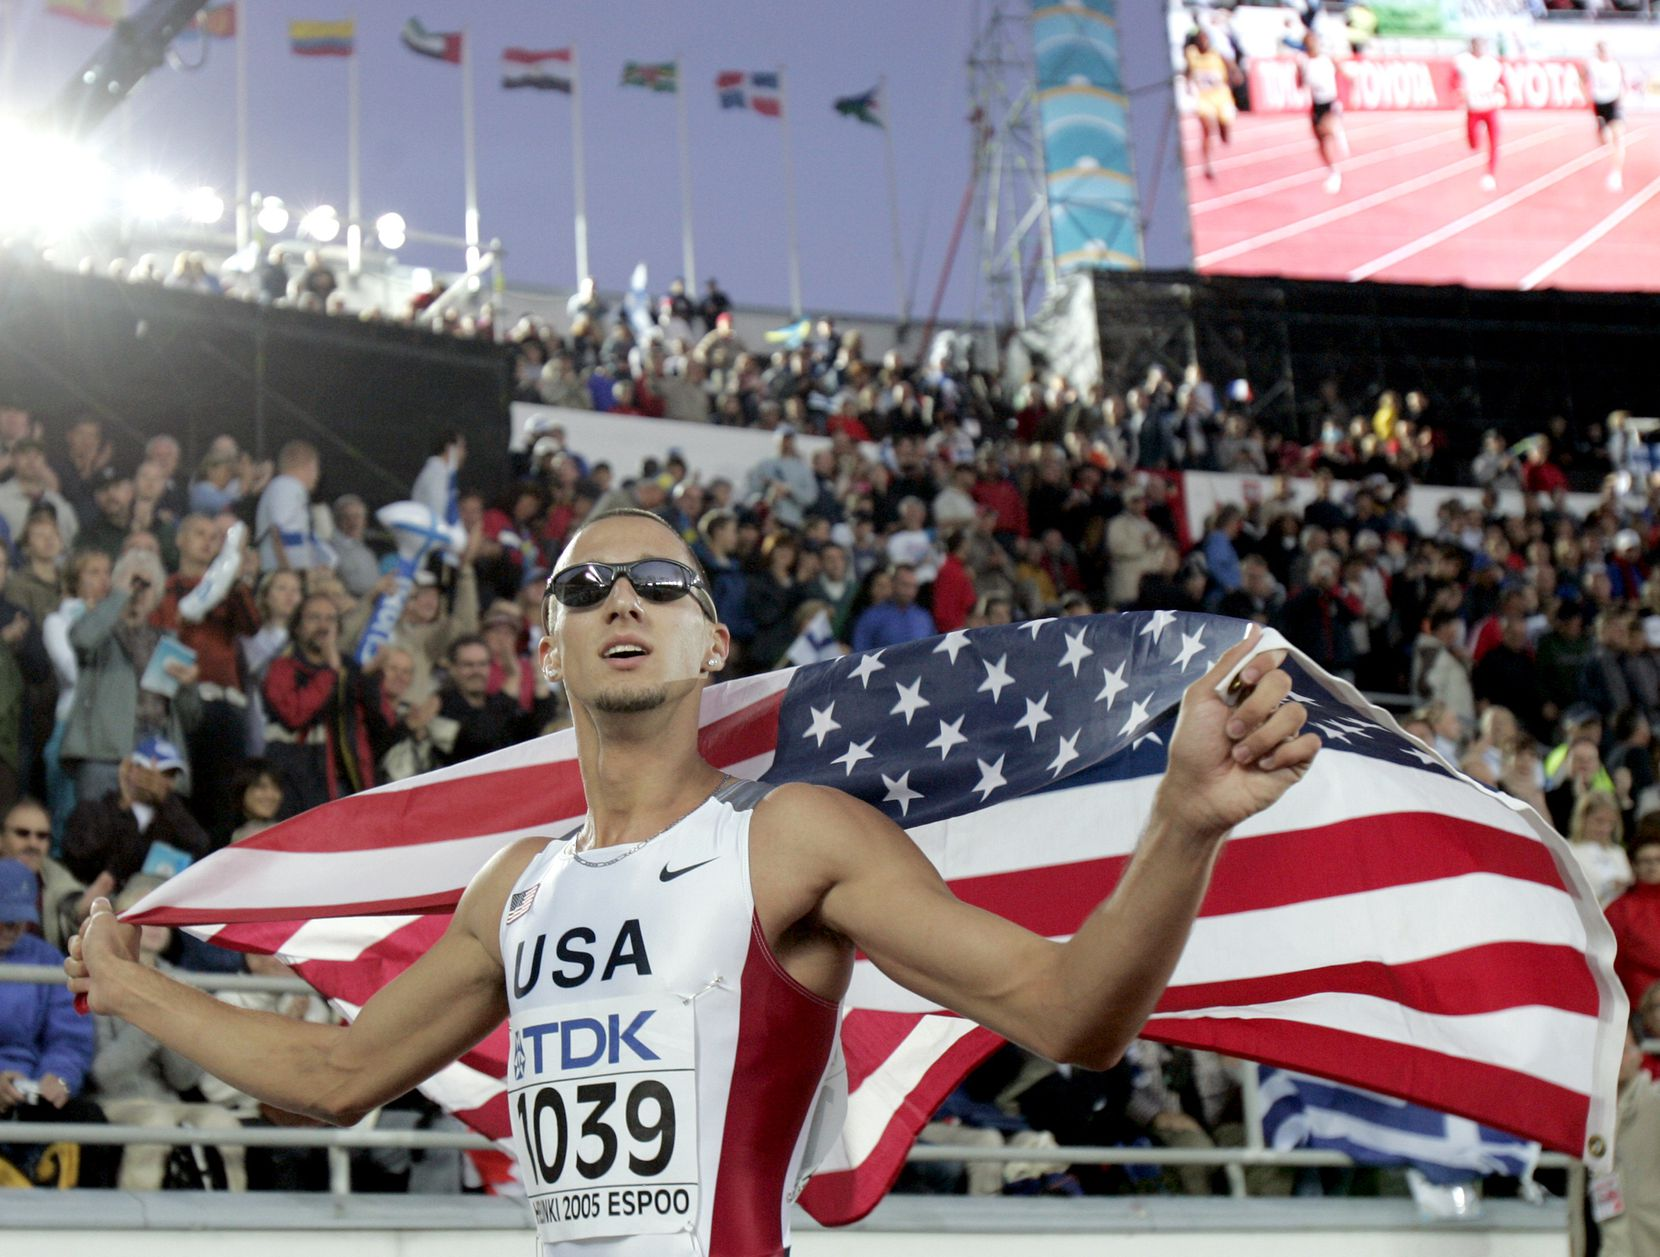 eremy Wariner of the US poses with the Stars and Stripes after winning the gold medal in the final of the Men's 400 meters at the World Athletics Championships in Helsinki, Finland, Friday, Aug. 12, 2005.